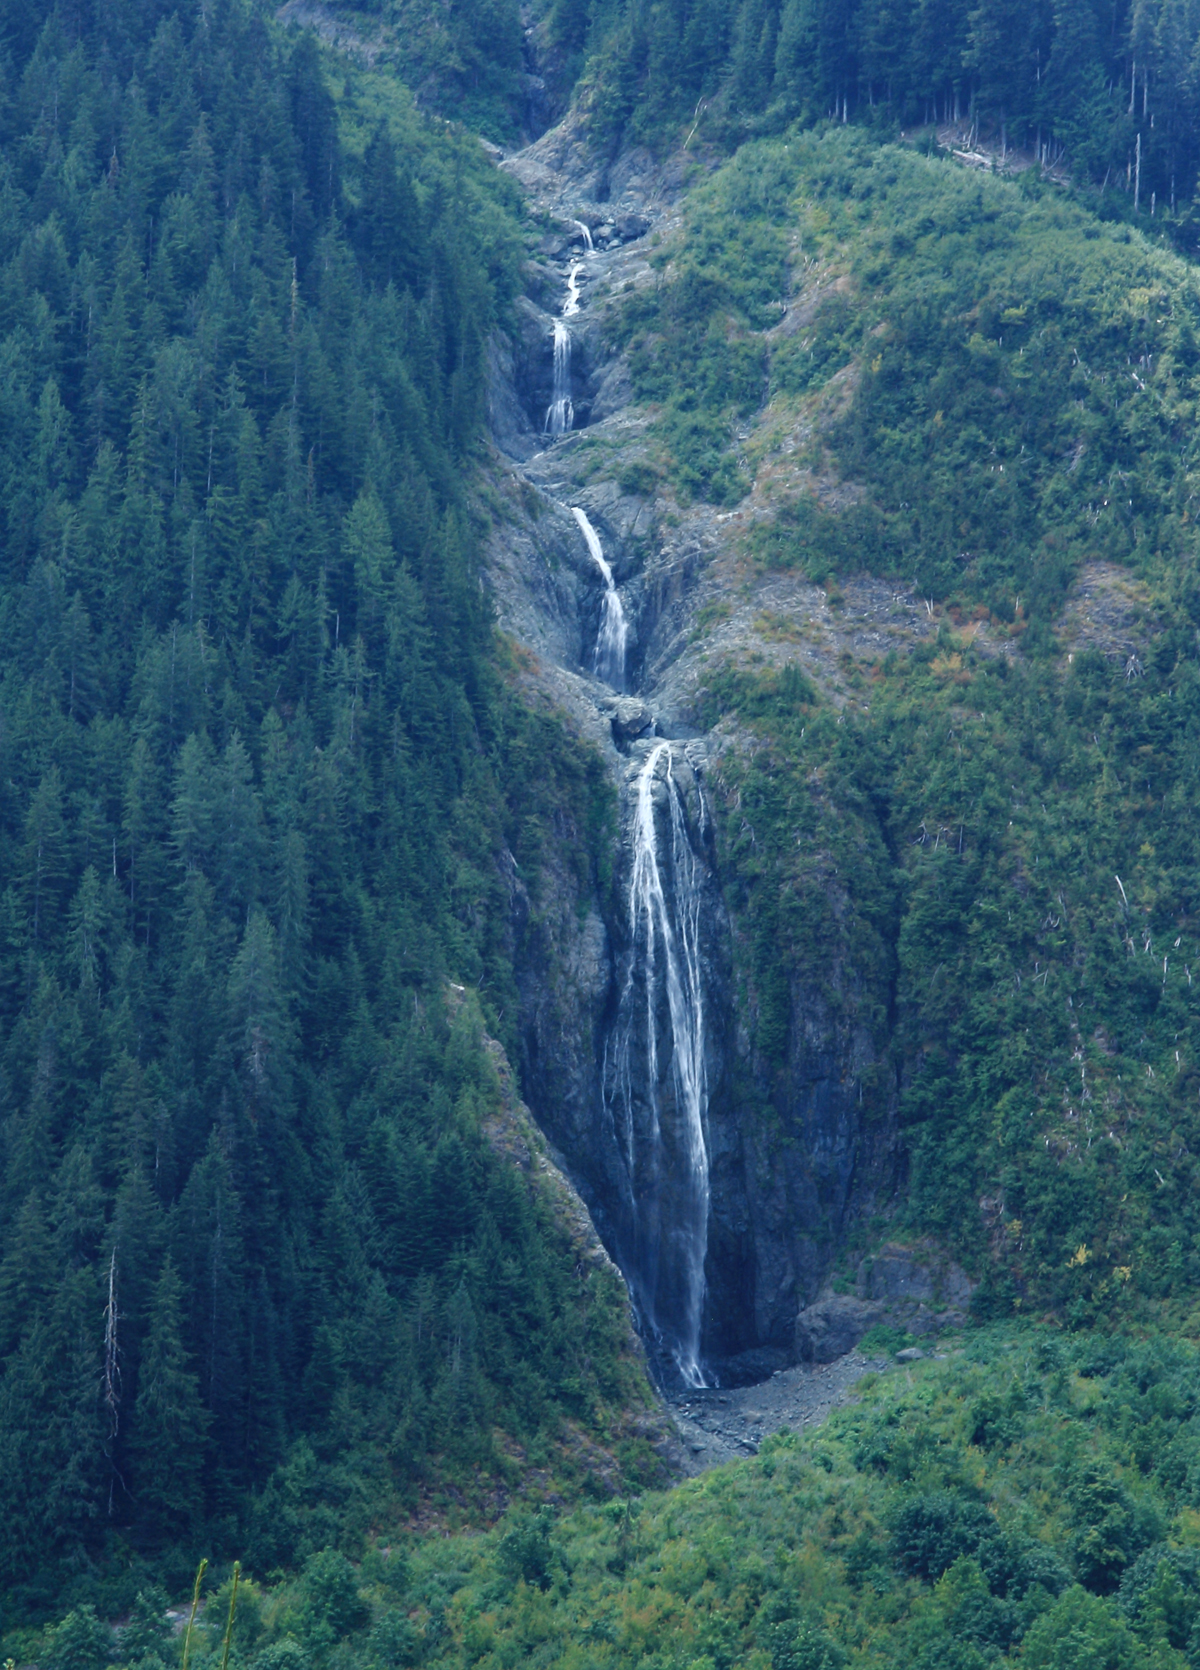 Secret waterfall, from a forest service road. Vancouver Island, BC. Photo by Andrée Fredette